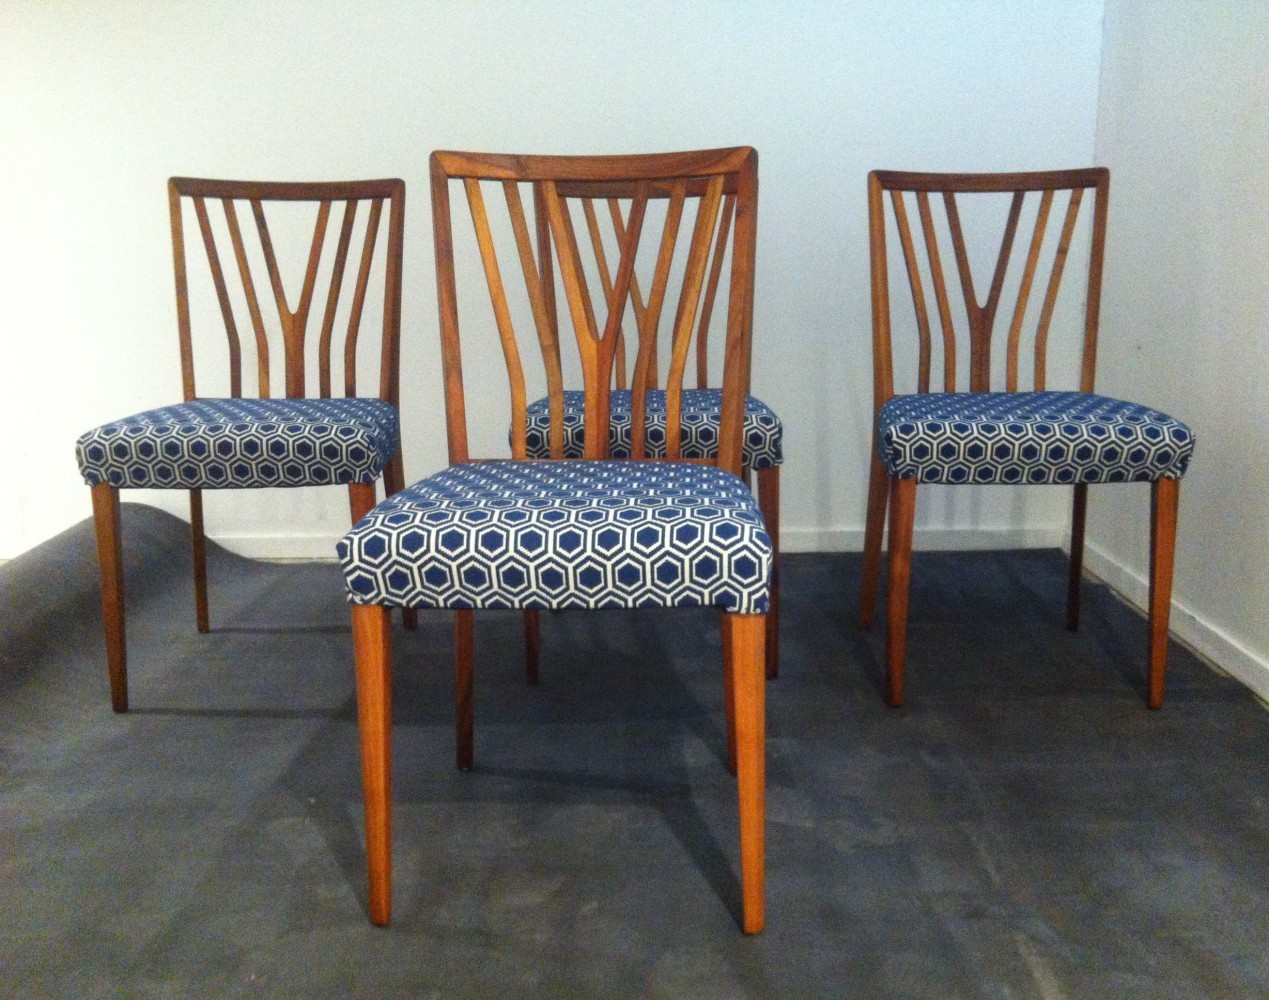 Set Of 4 Zijlstra Joure 'POLY-Z' Chairs By A. Patijn